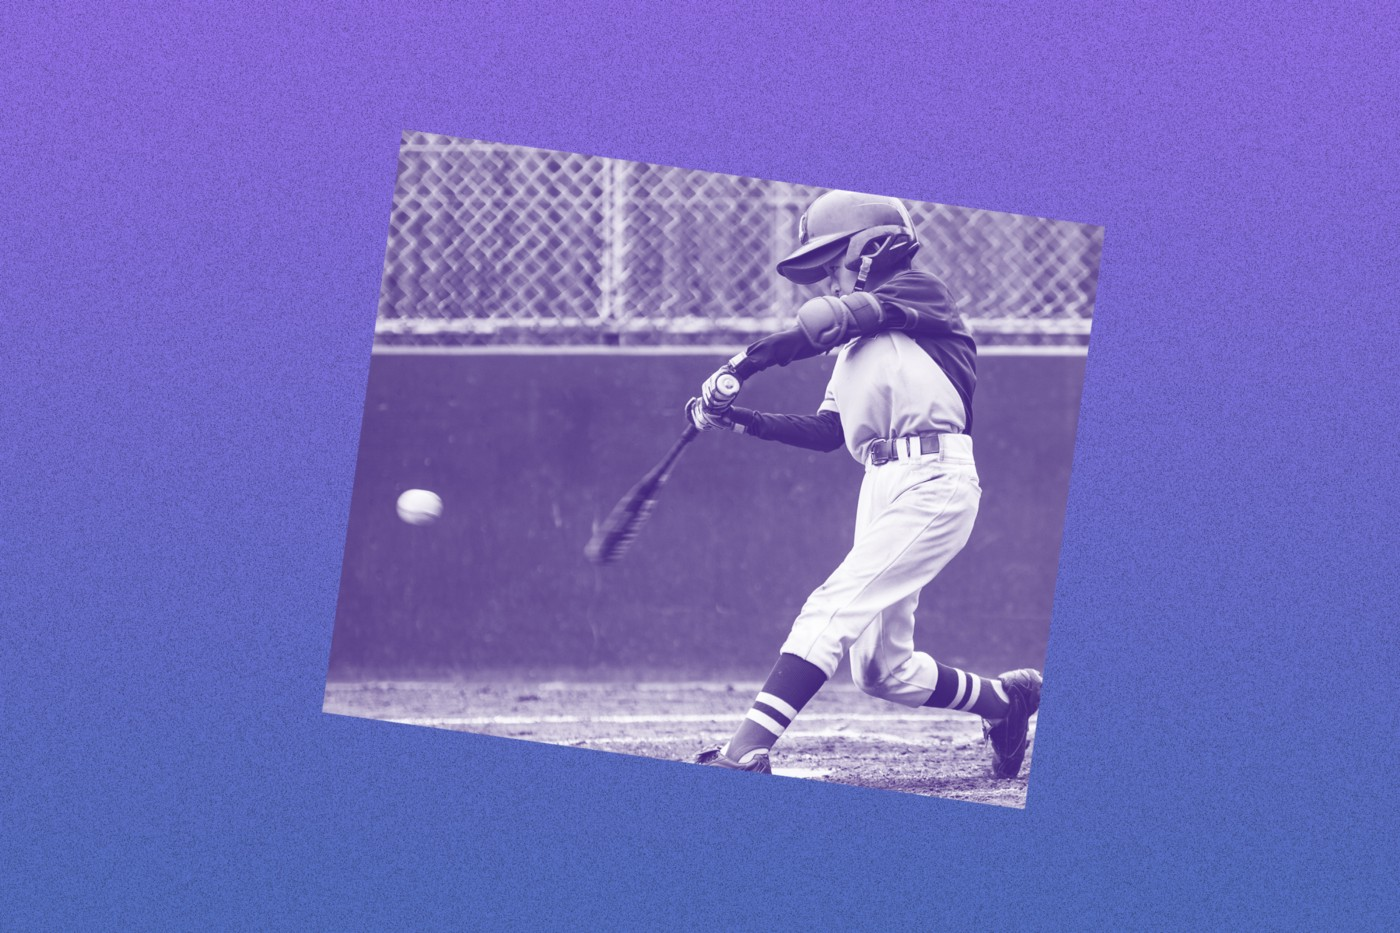 Filtered image of a young kid hitting a baseball with a bat.